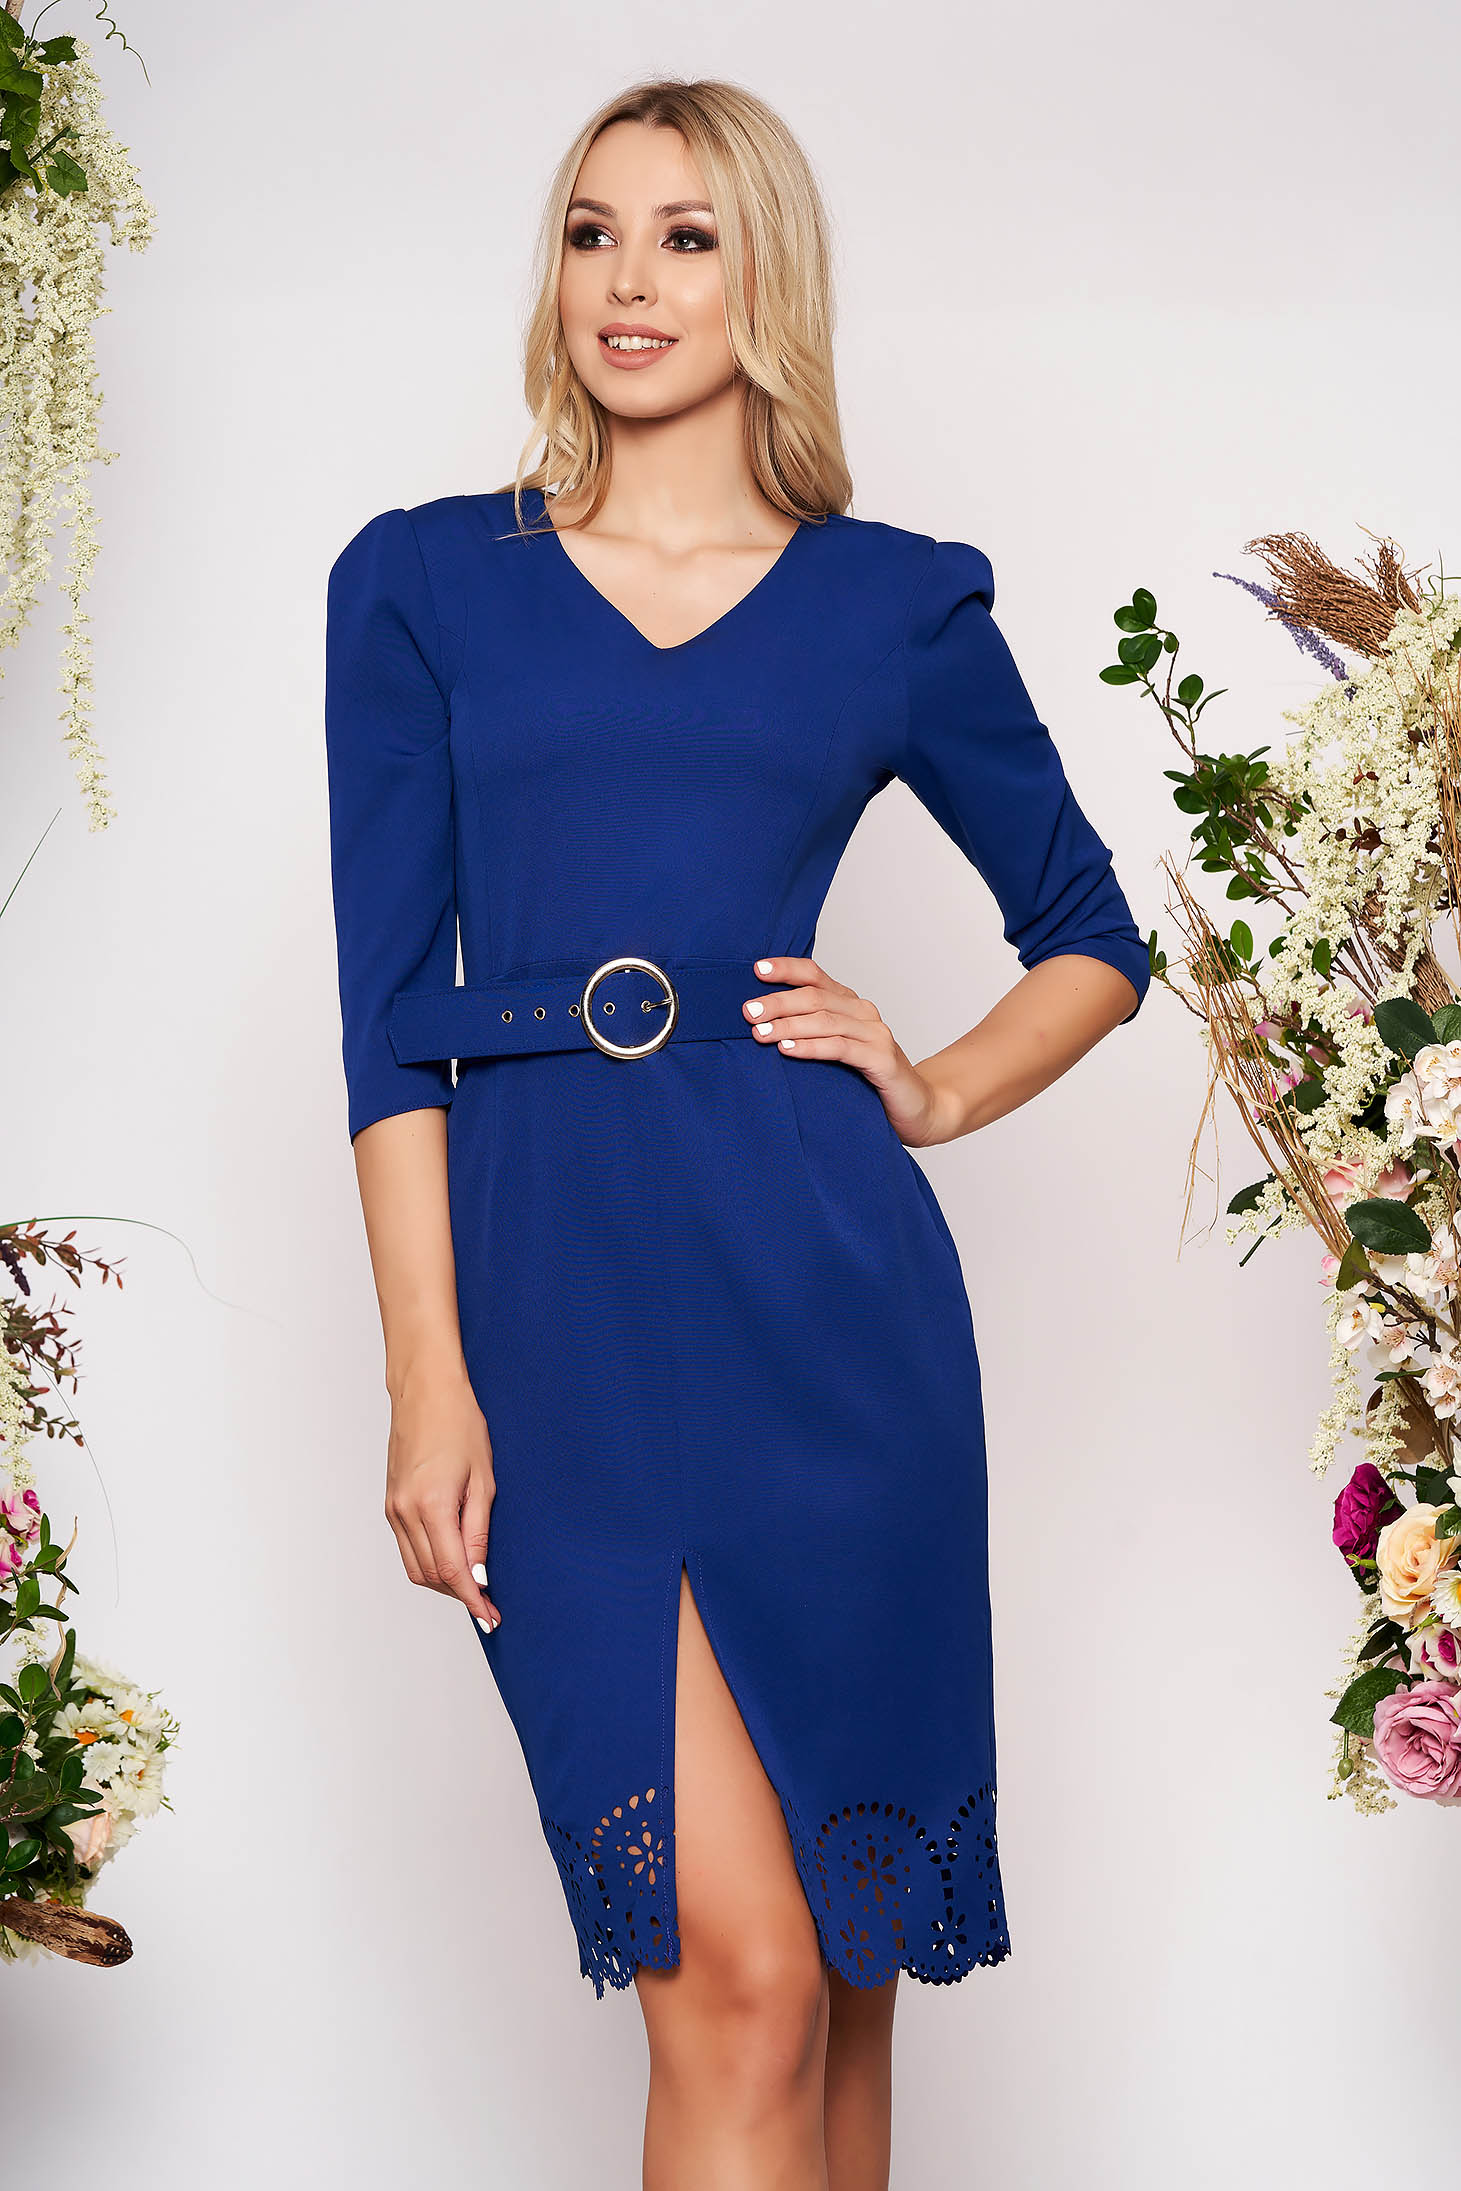 Blue dress elegant midi pencil with v-neckline with cut out material accessorized with belt